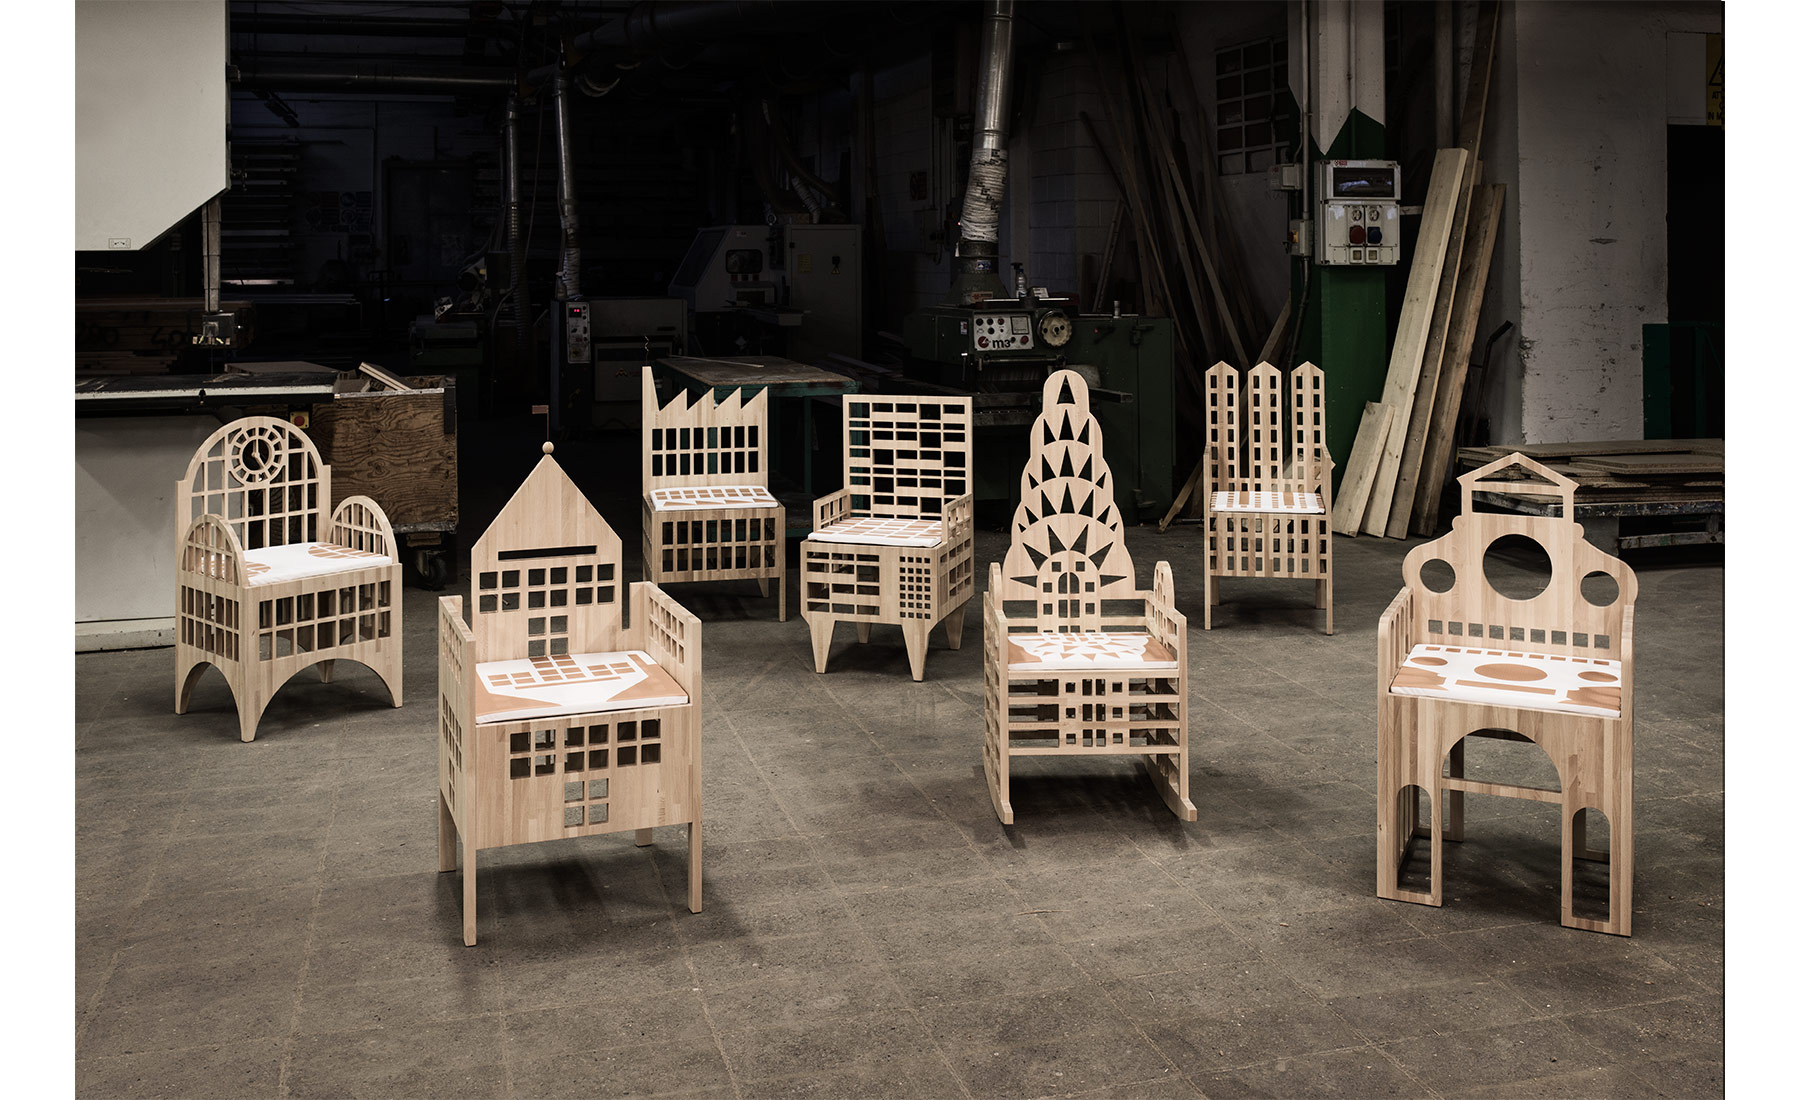 marco-tacchini-photographer-village-chairs_07